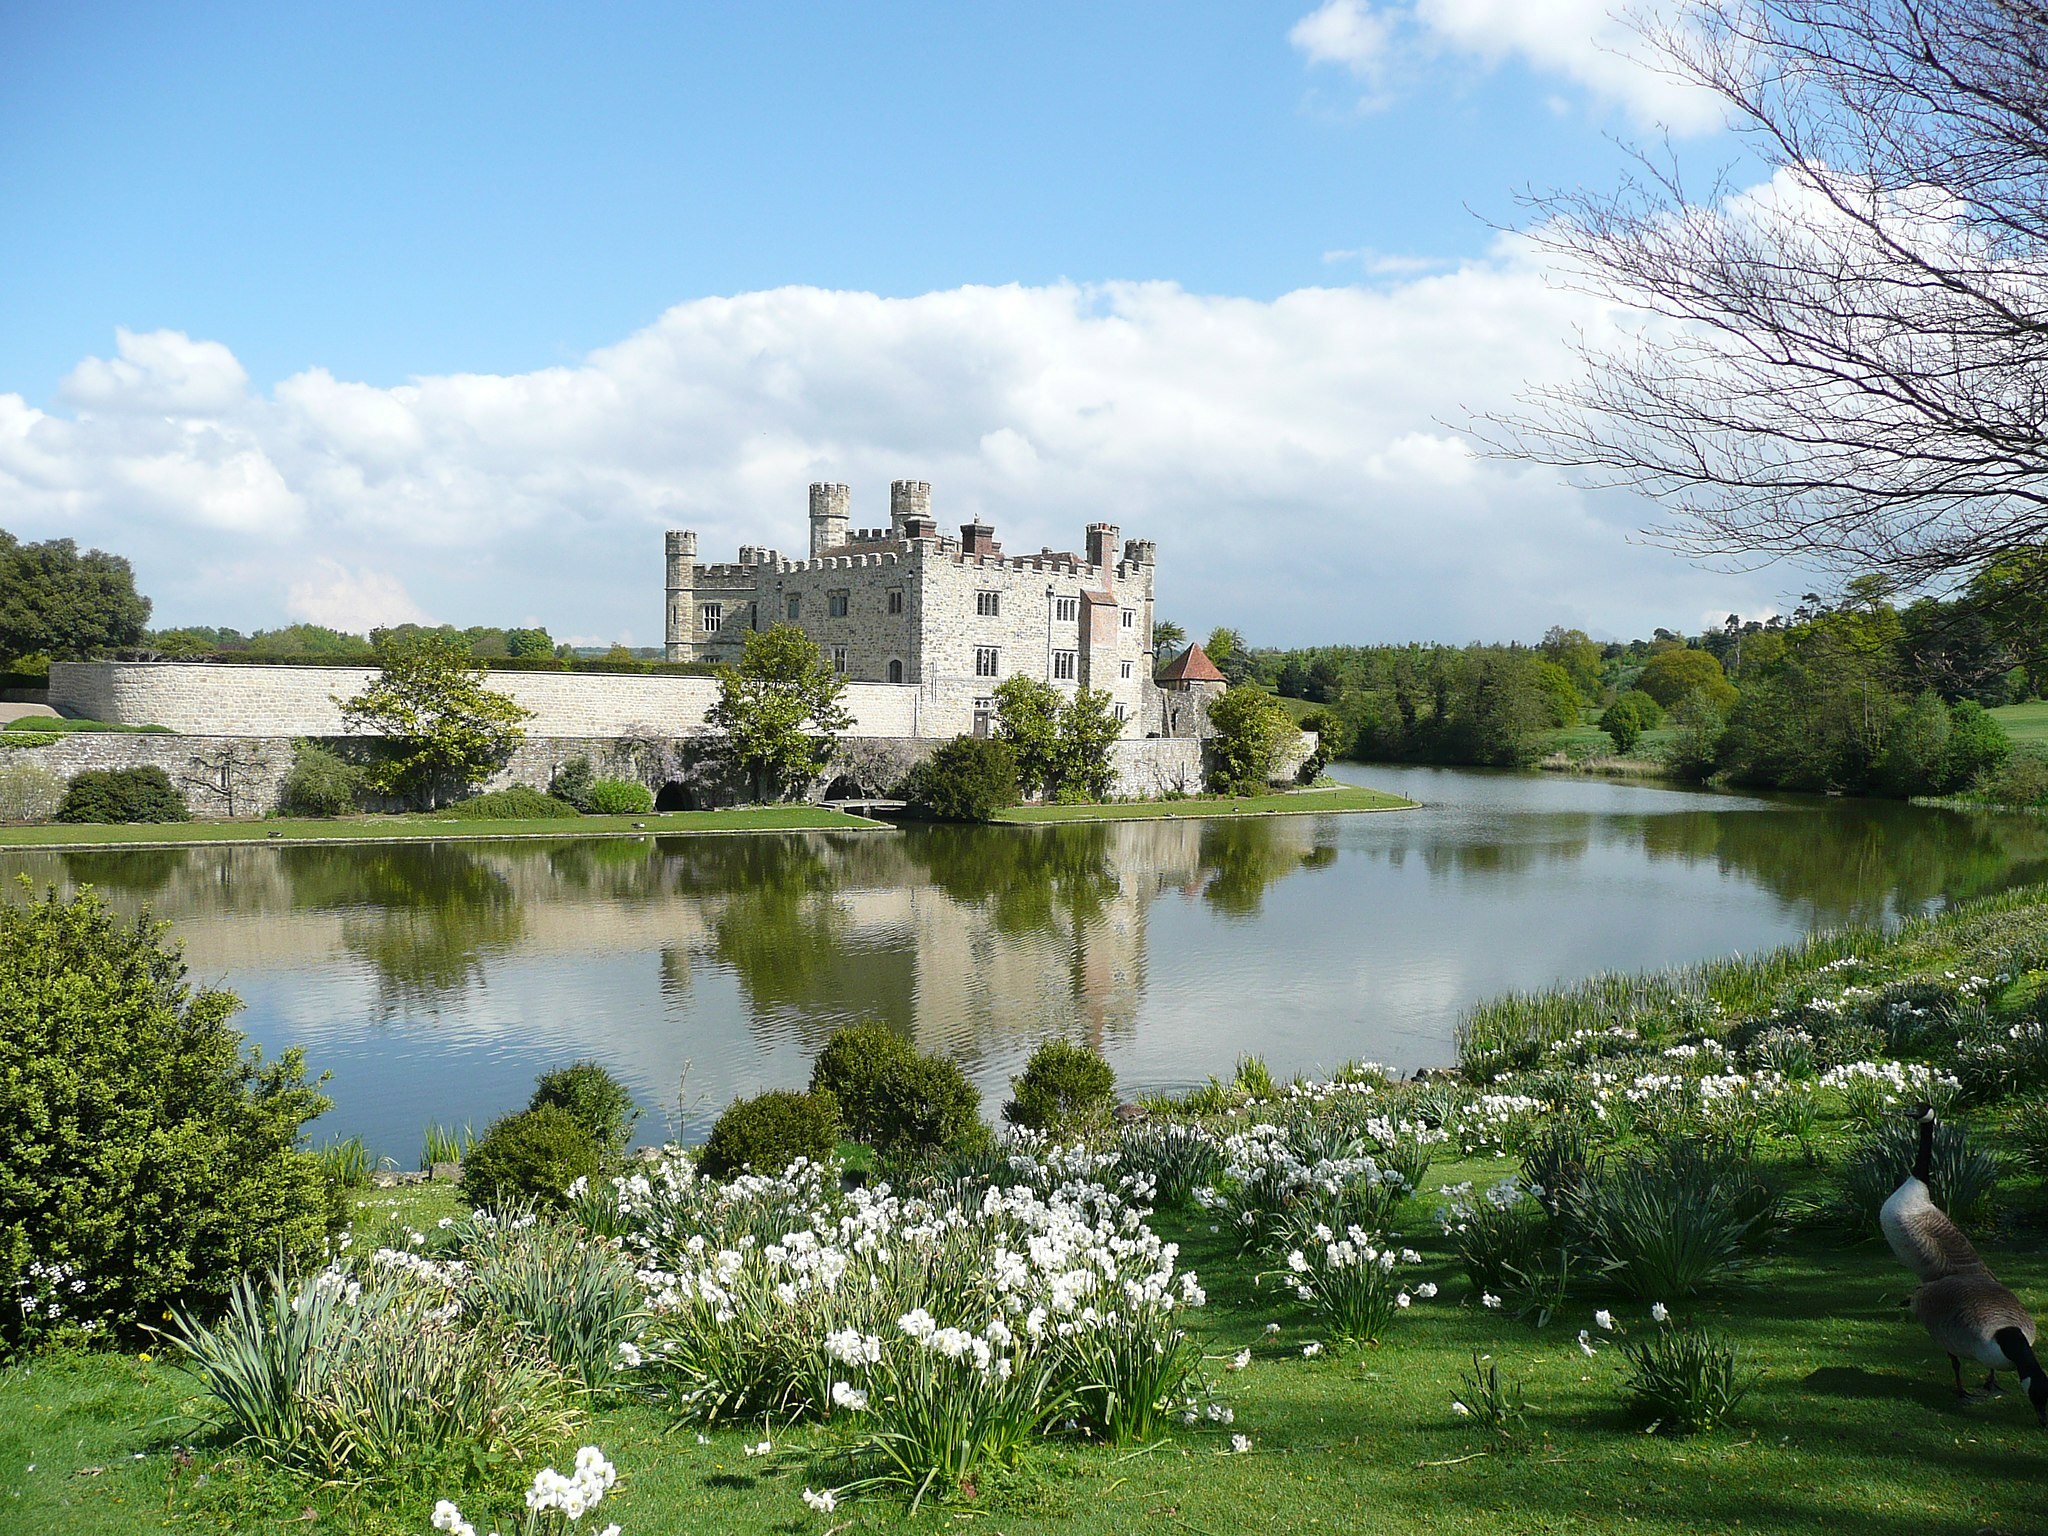 A shot of Leeds Castle during the day from across the lake